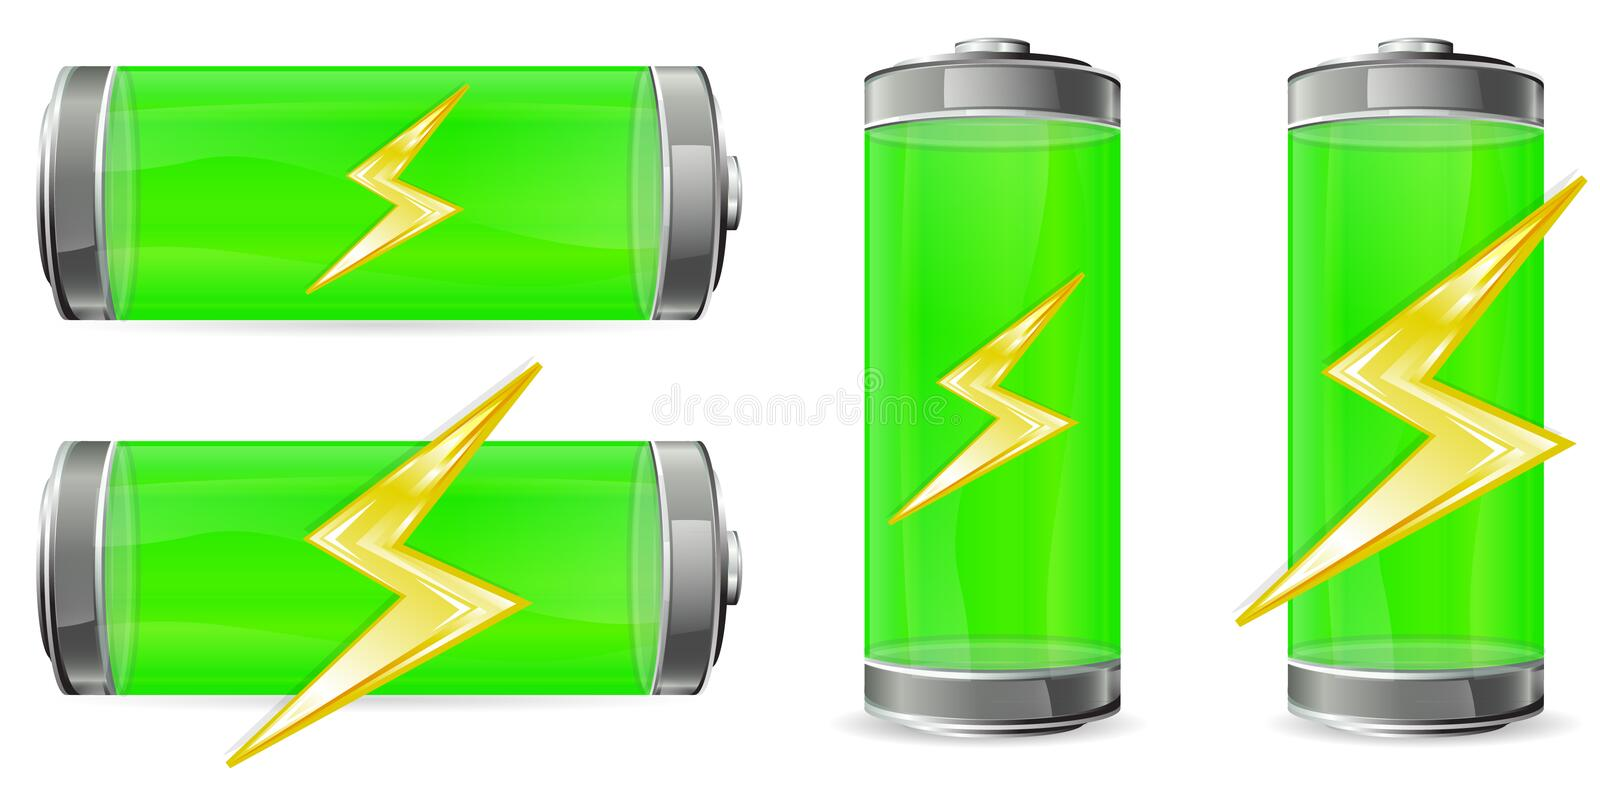 Download Green battery stock vector. Image of flash, cylinder - 19269250